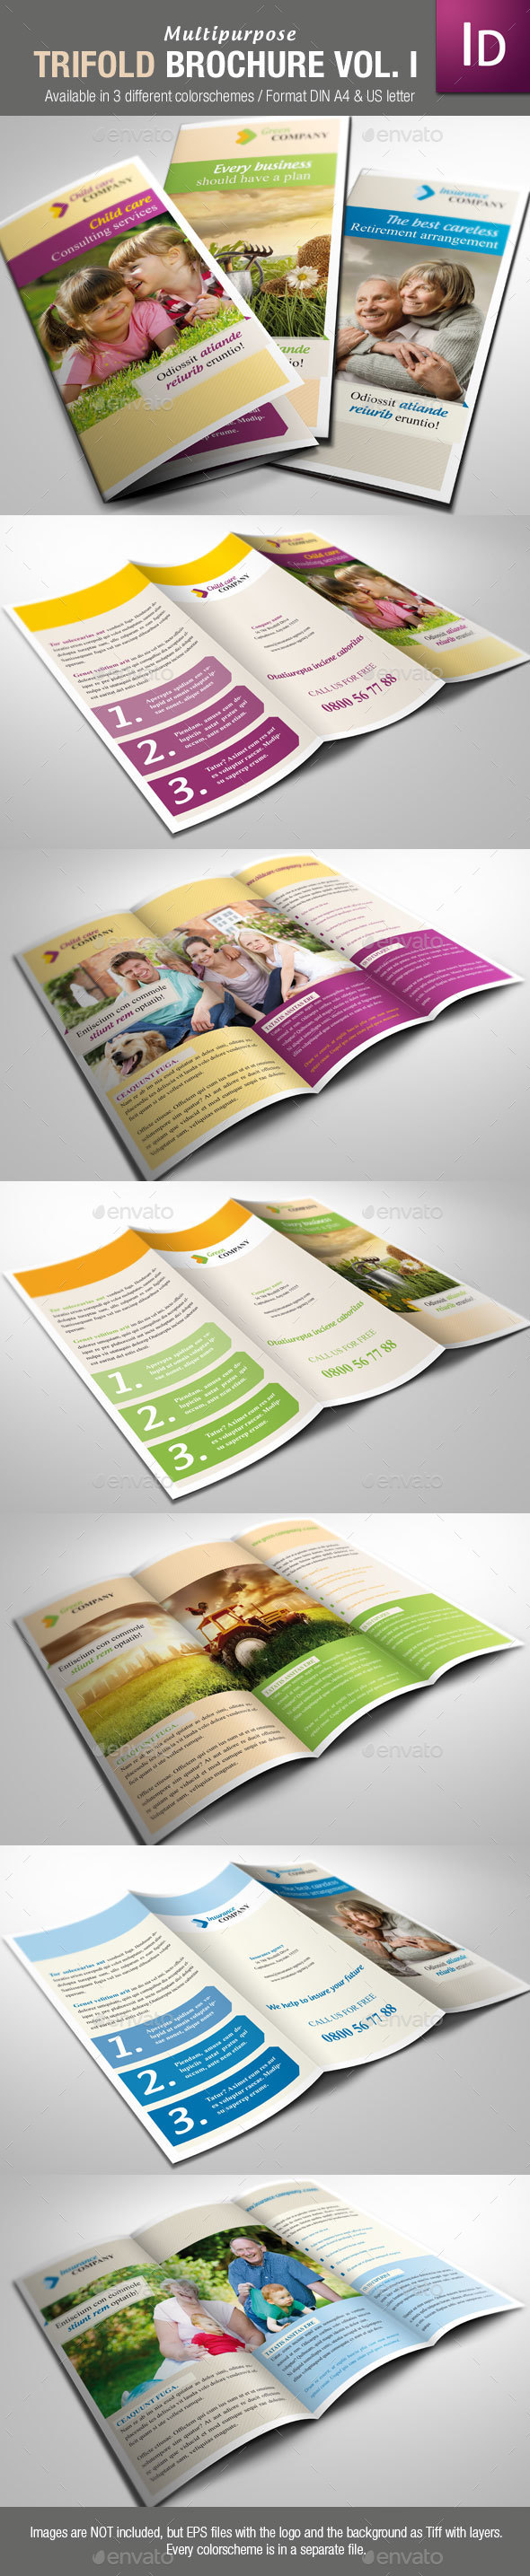 Multipurpose Trifold Brochure Vol. I - Corporate Brochures